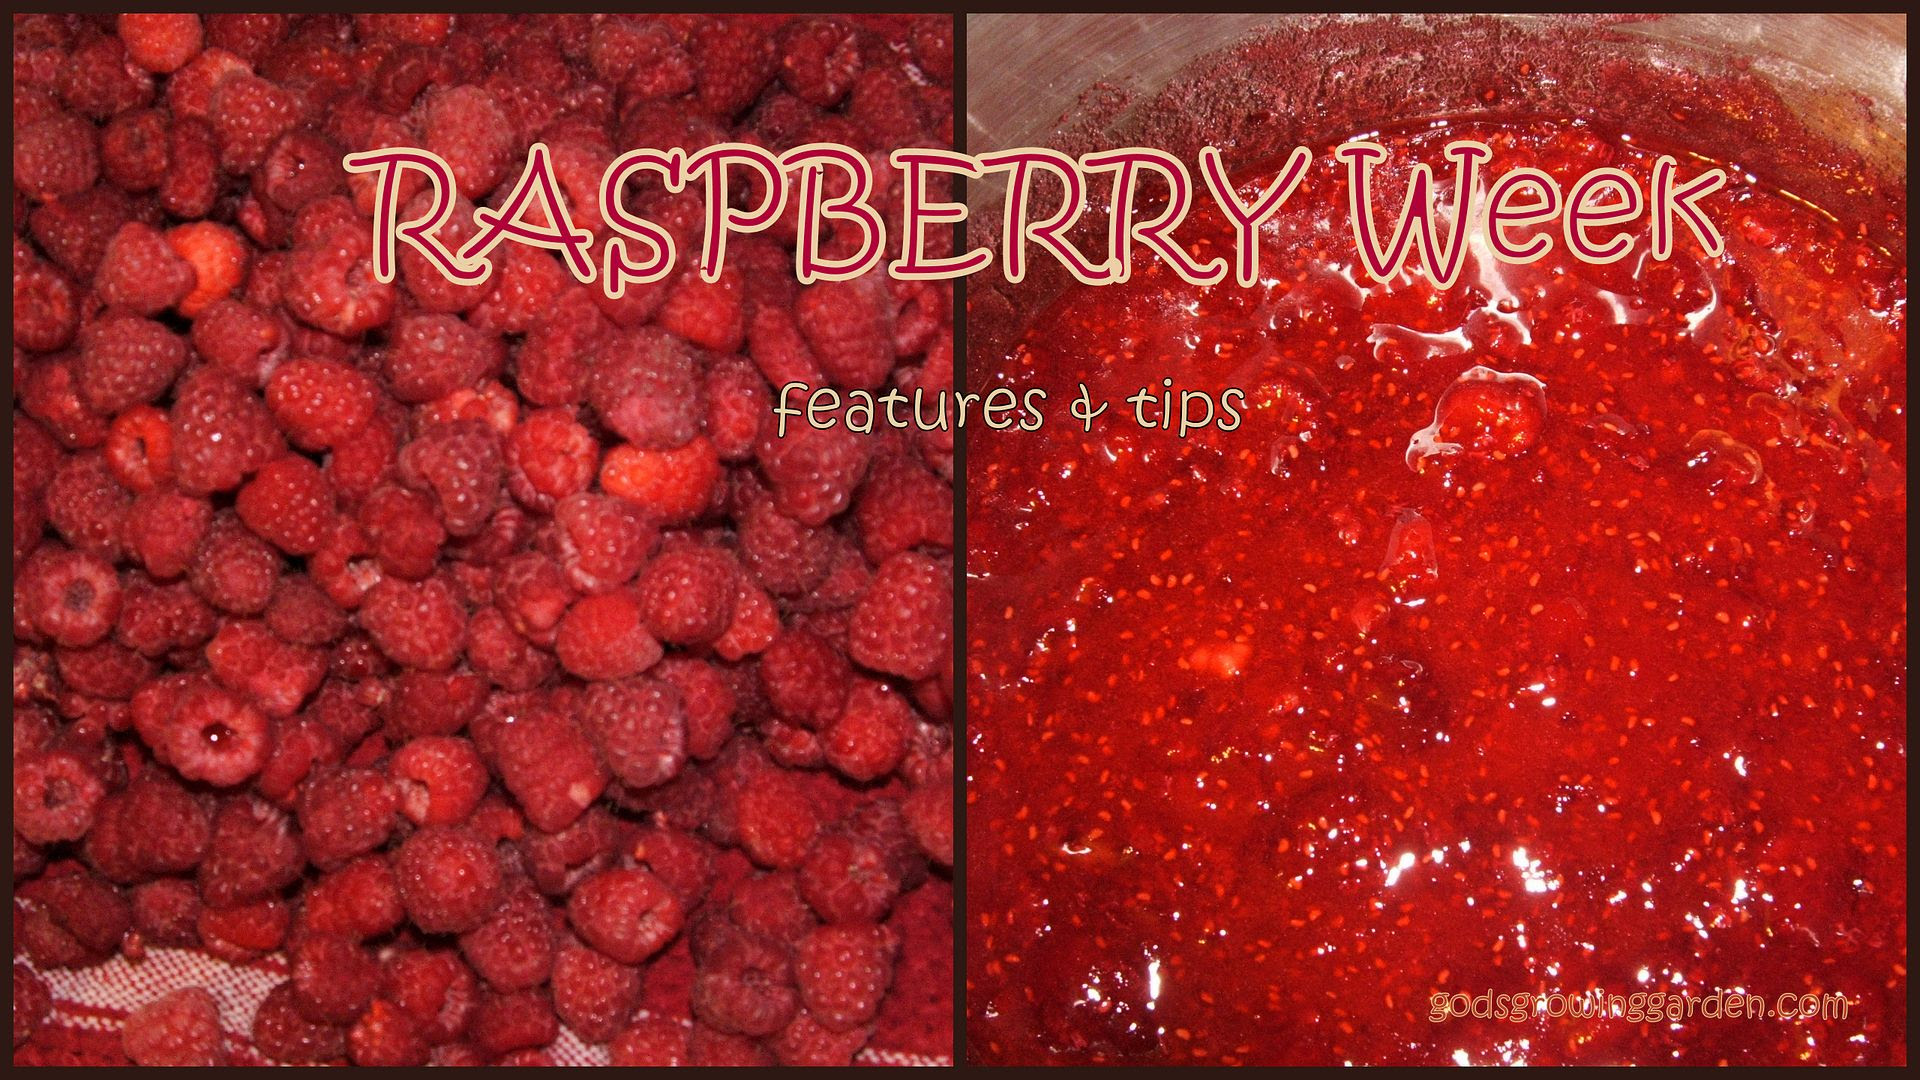 RASPBERRY by Angie Ouellette-Tower for godsgrowinggarden.com photo BlogStuff_zpsae13f181.jpg